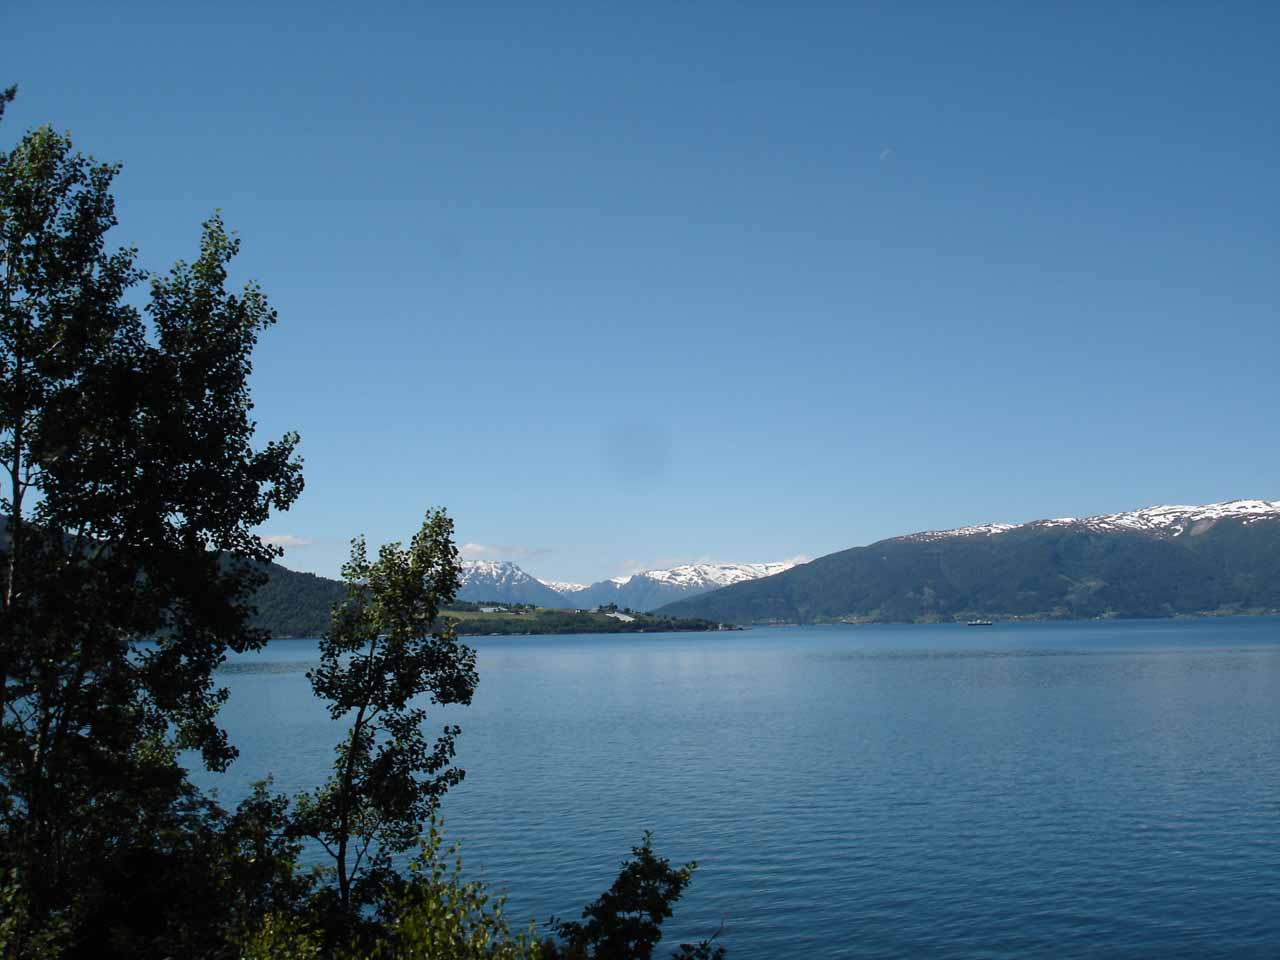 Looking out towards the wide open body of water of Sognefjorden